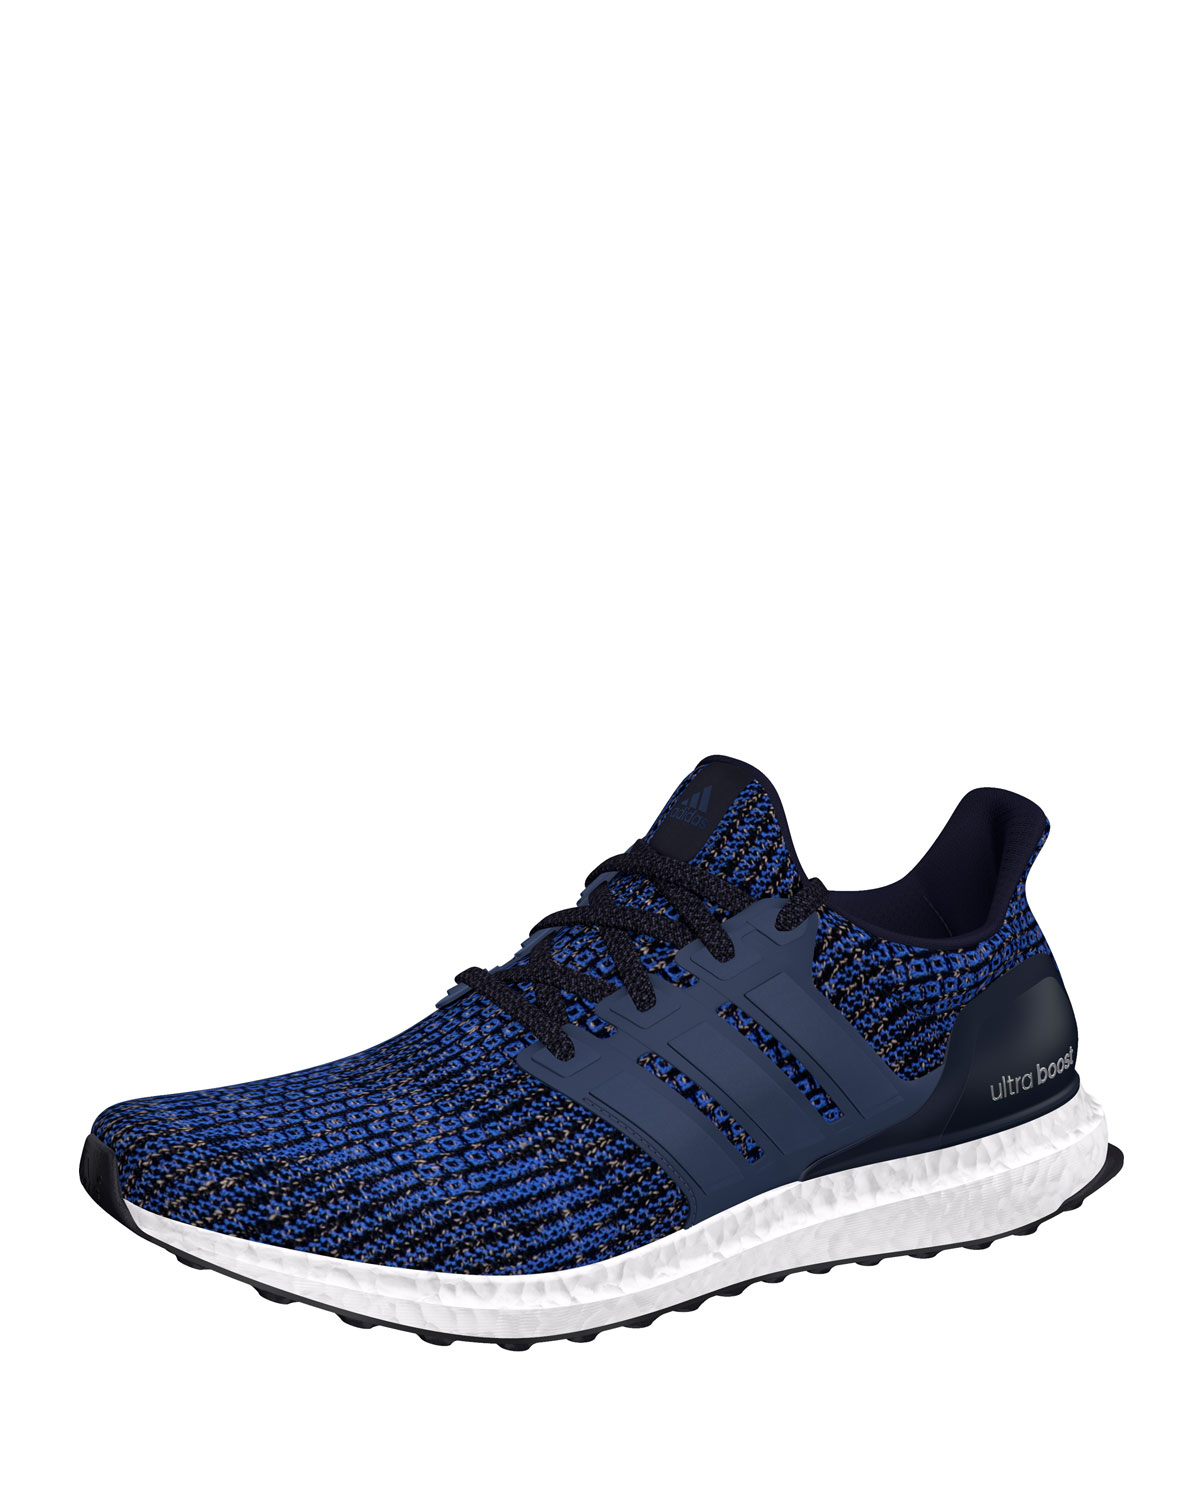 0397df084 Adidas Men s Ultraboost Running Sneakers